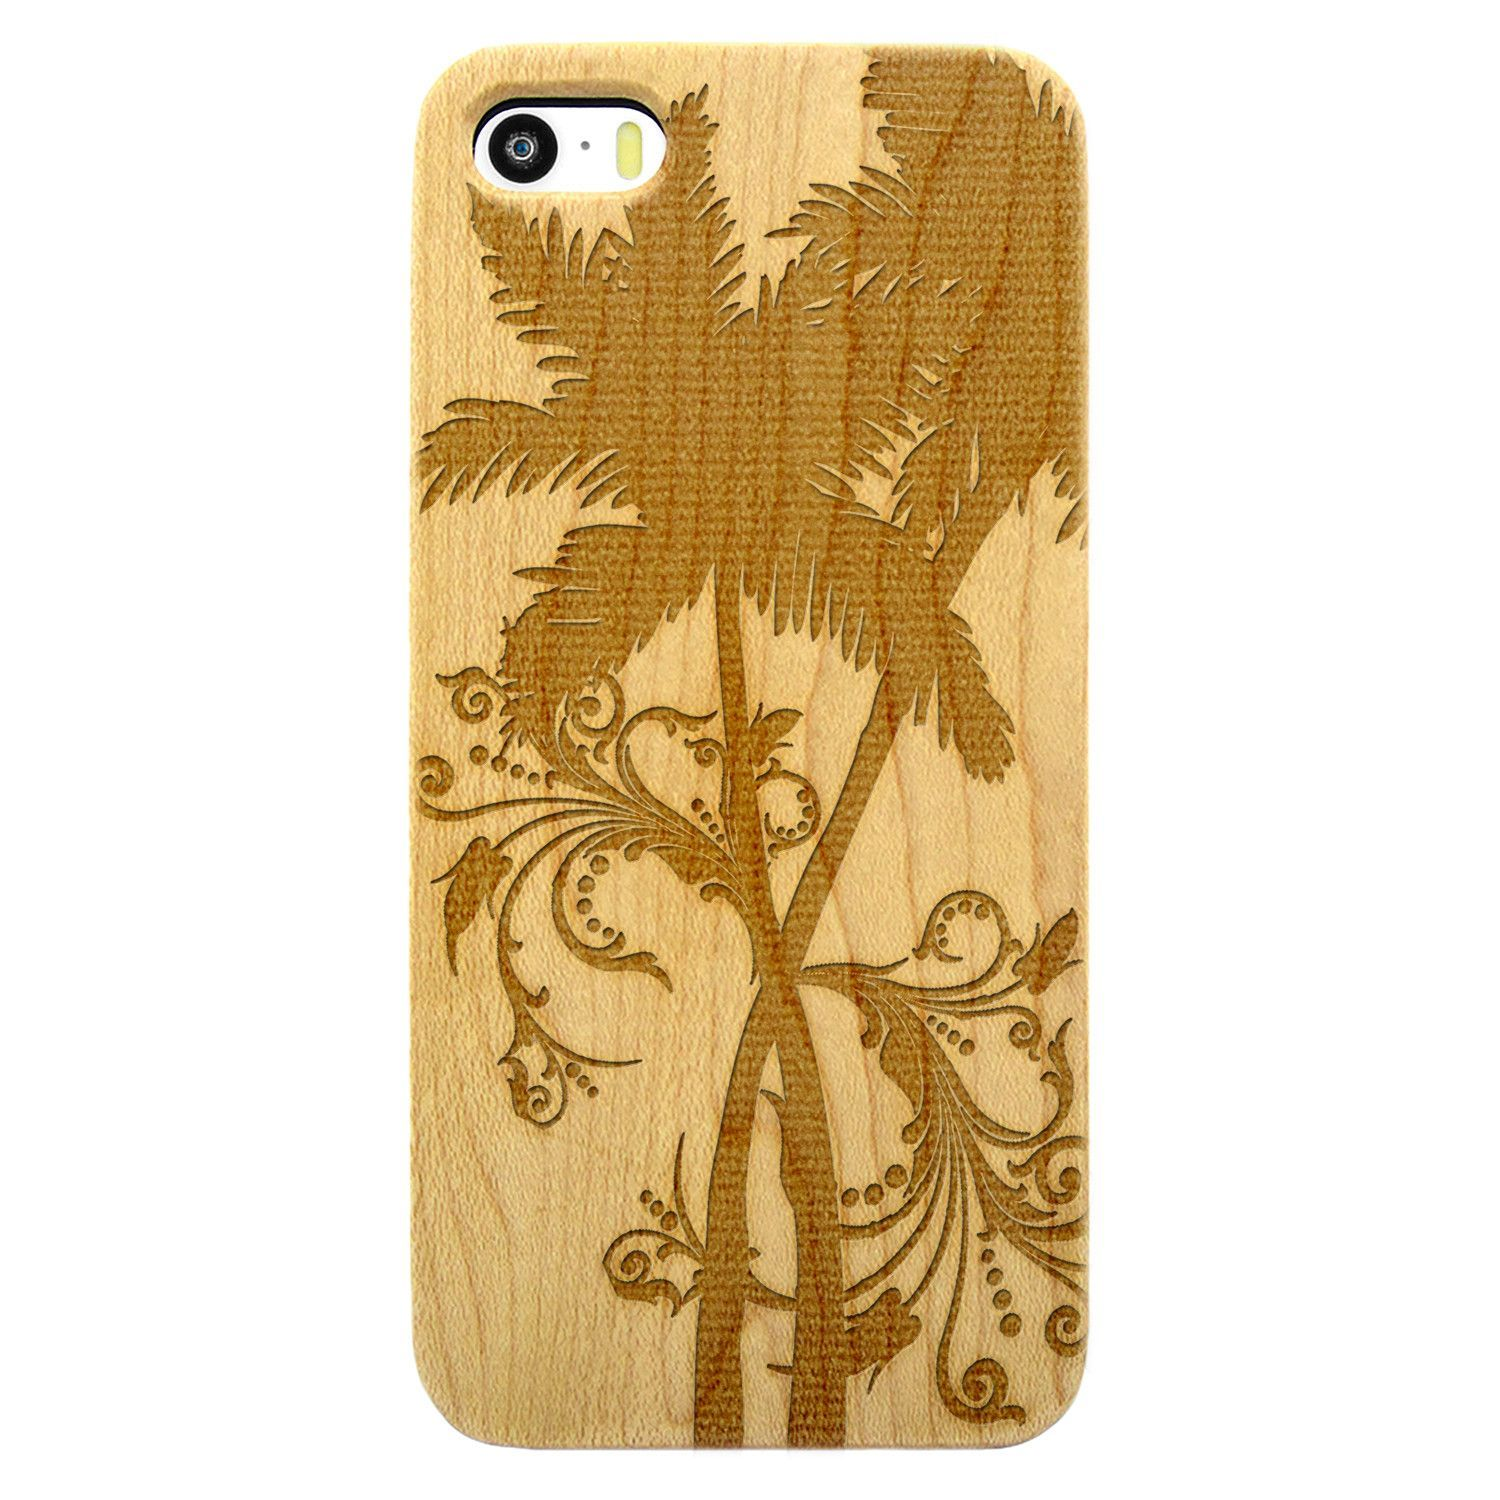 California Palm Tree Floral- Laser Engraved Wood Phone Case (Maple,Cherry,Black,Cork)